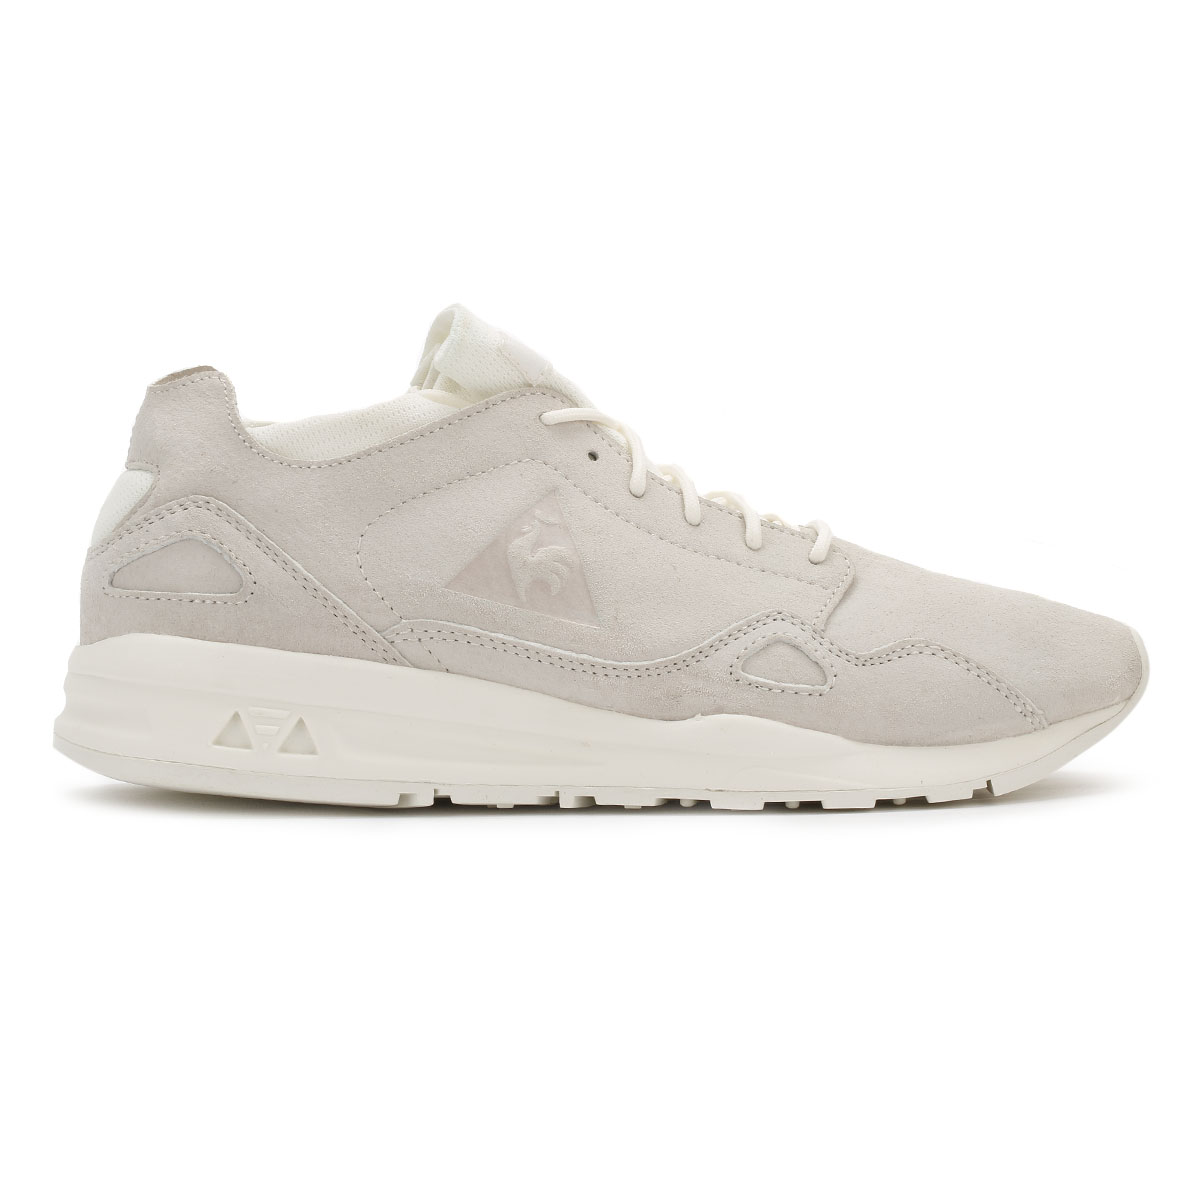 Le-Coq-Sportif-Womens-LCS-R-Flow-Trainers-